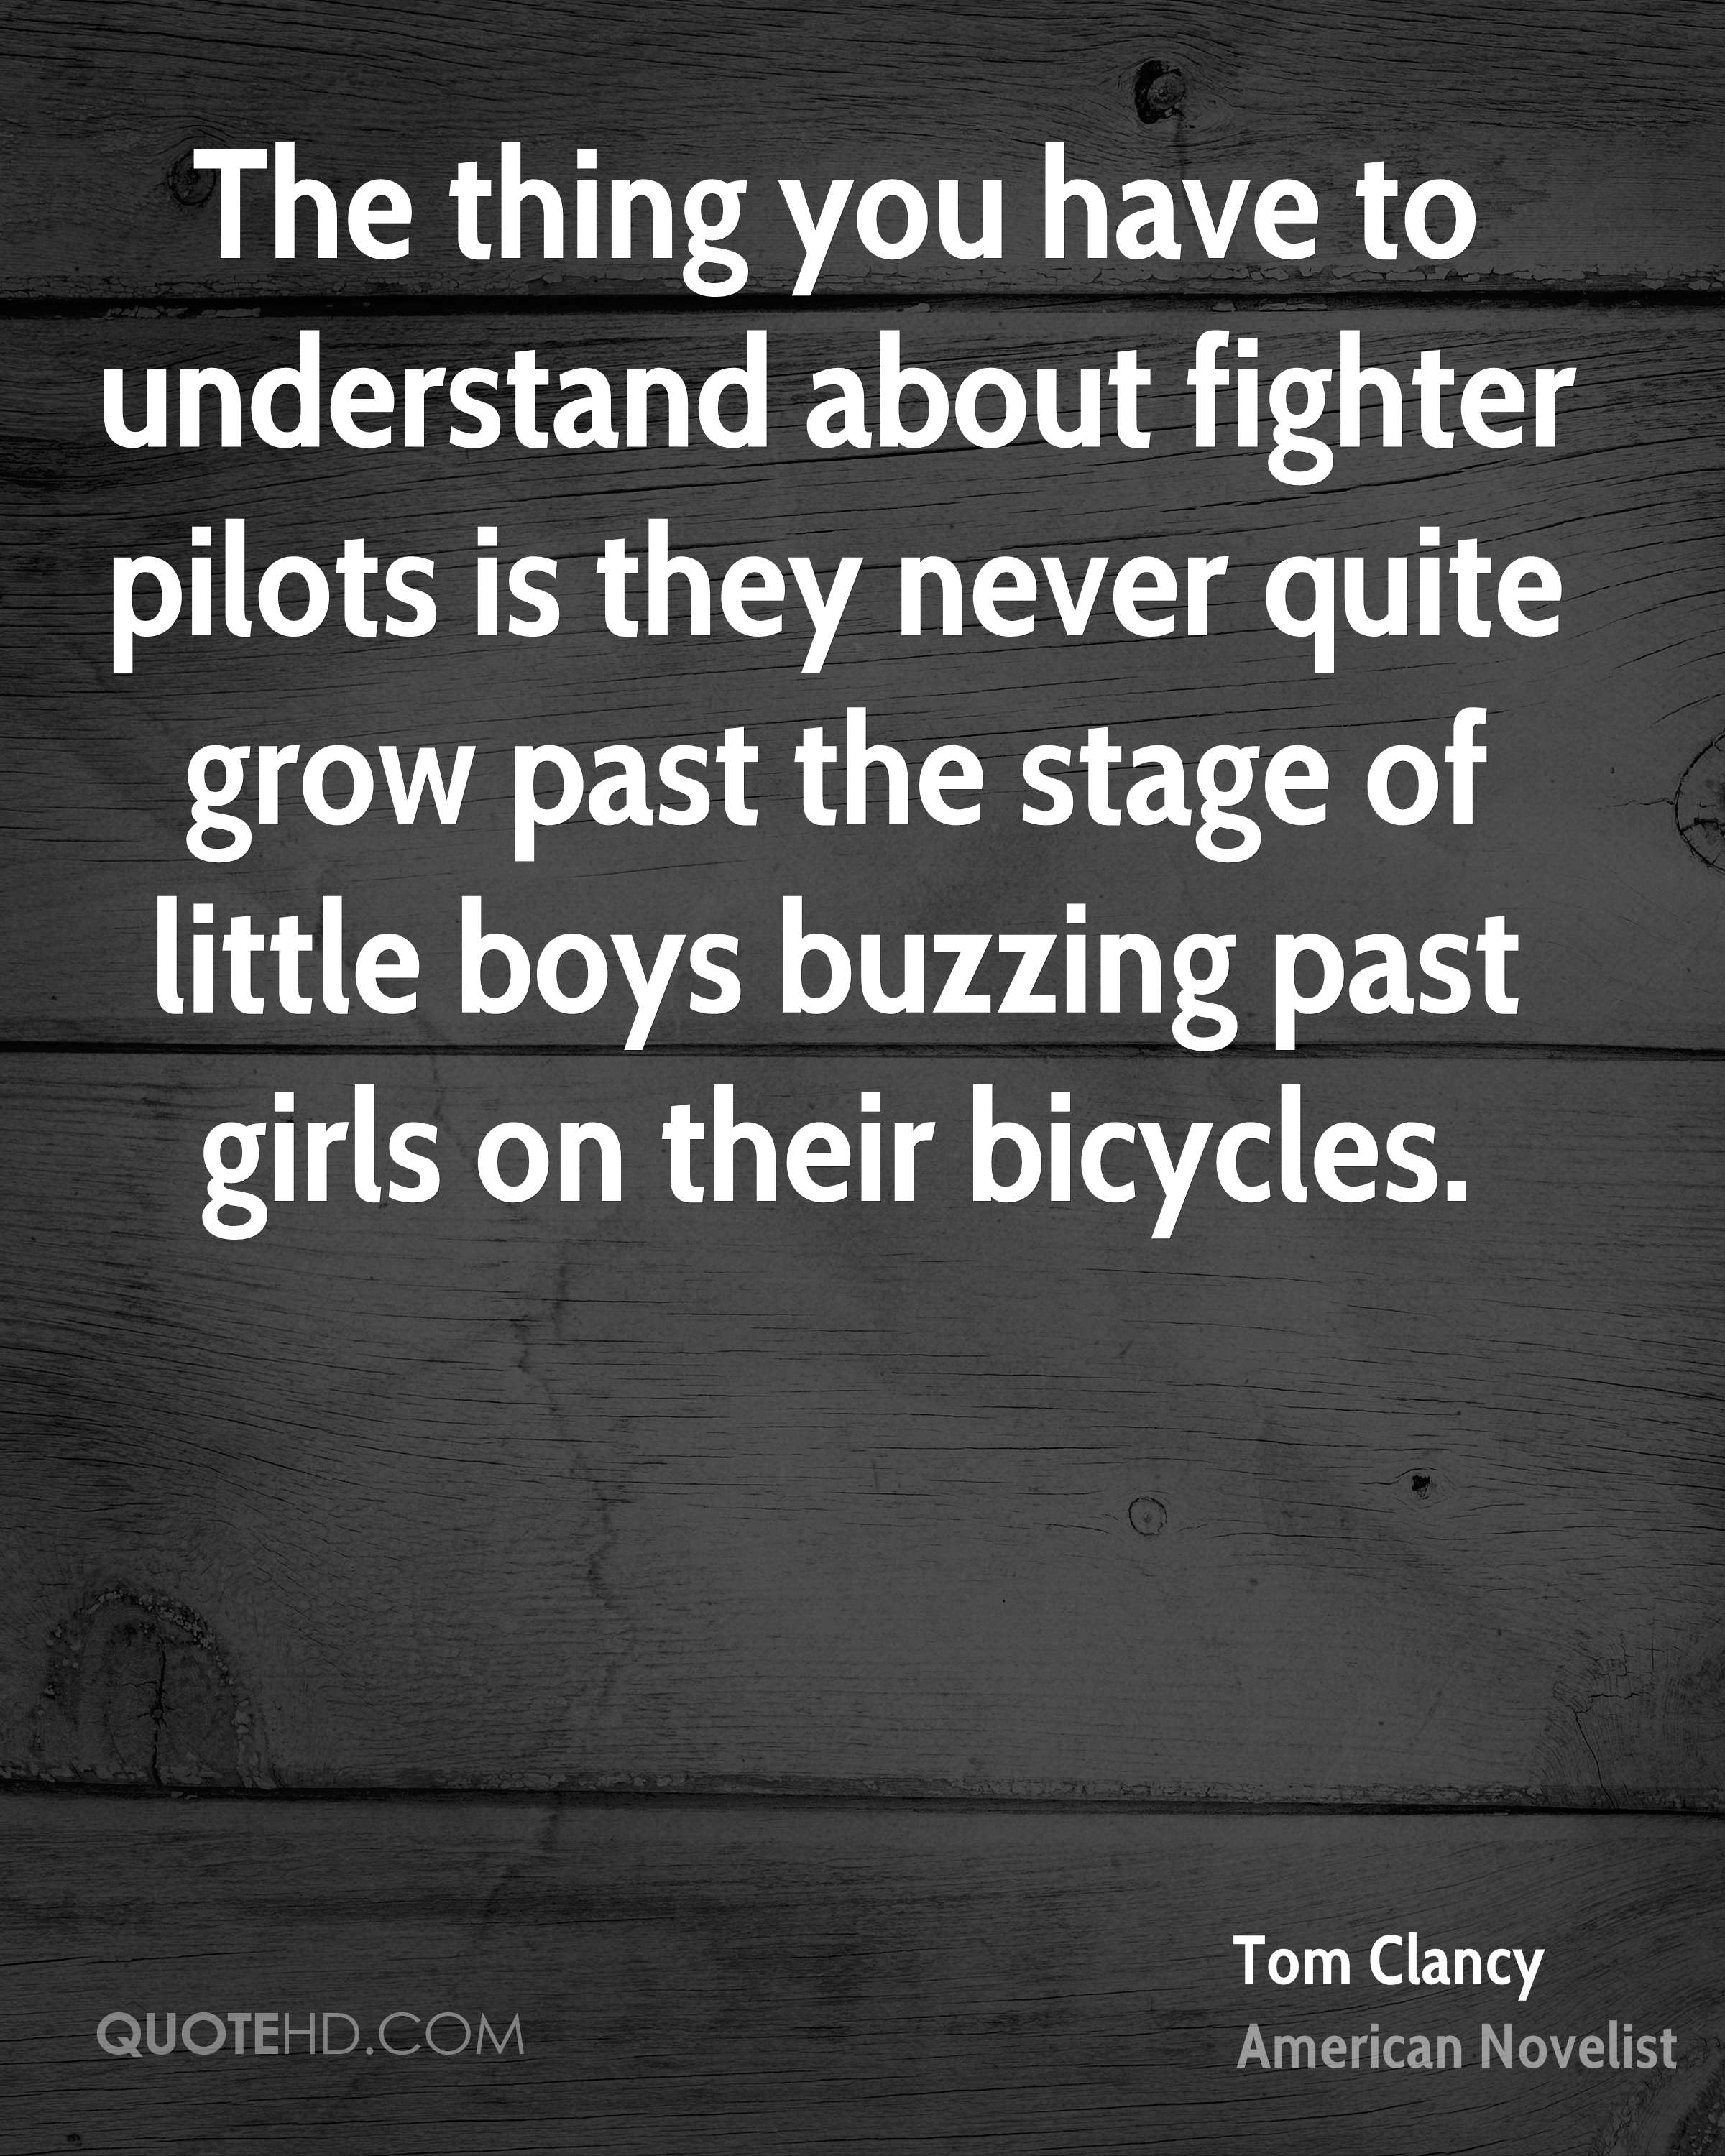 The thing you have to understand about fighter pilots is they never quite grow past the stage of little boys buzzing past girls on their bicycles.